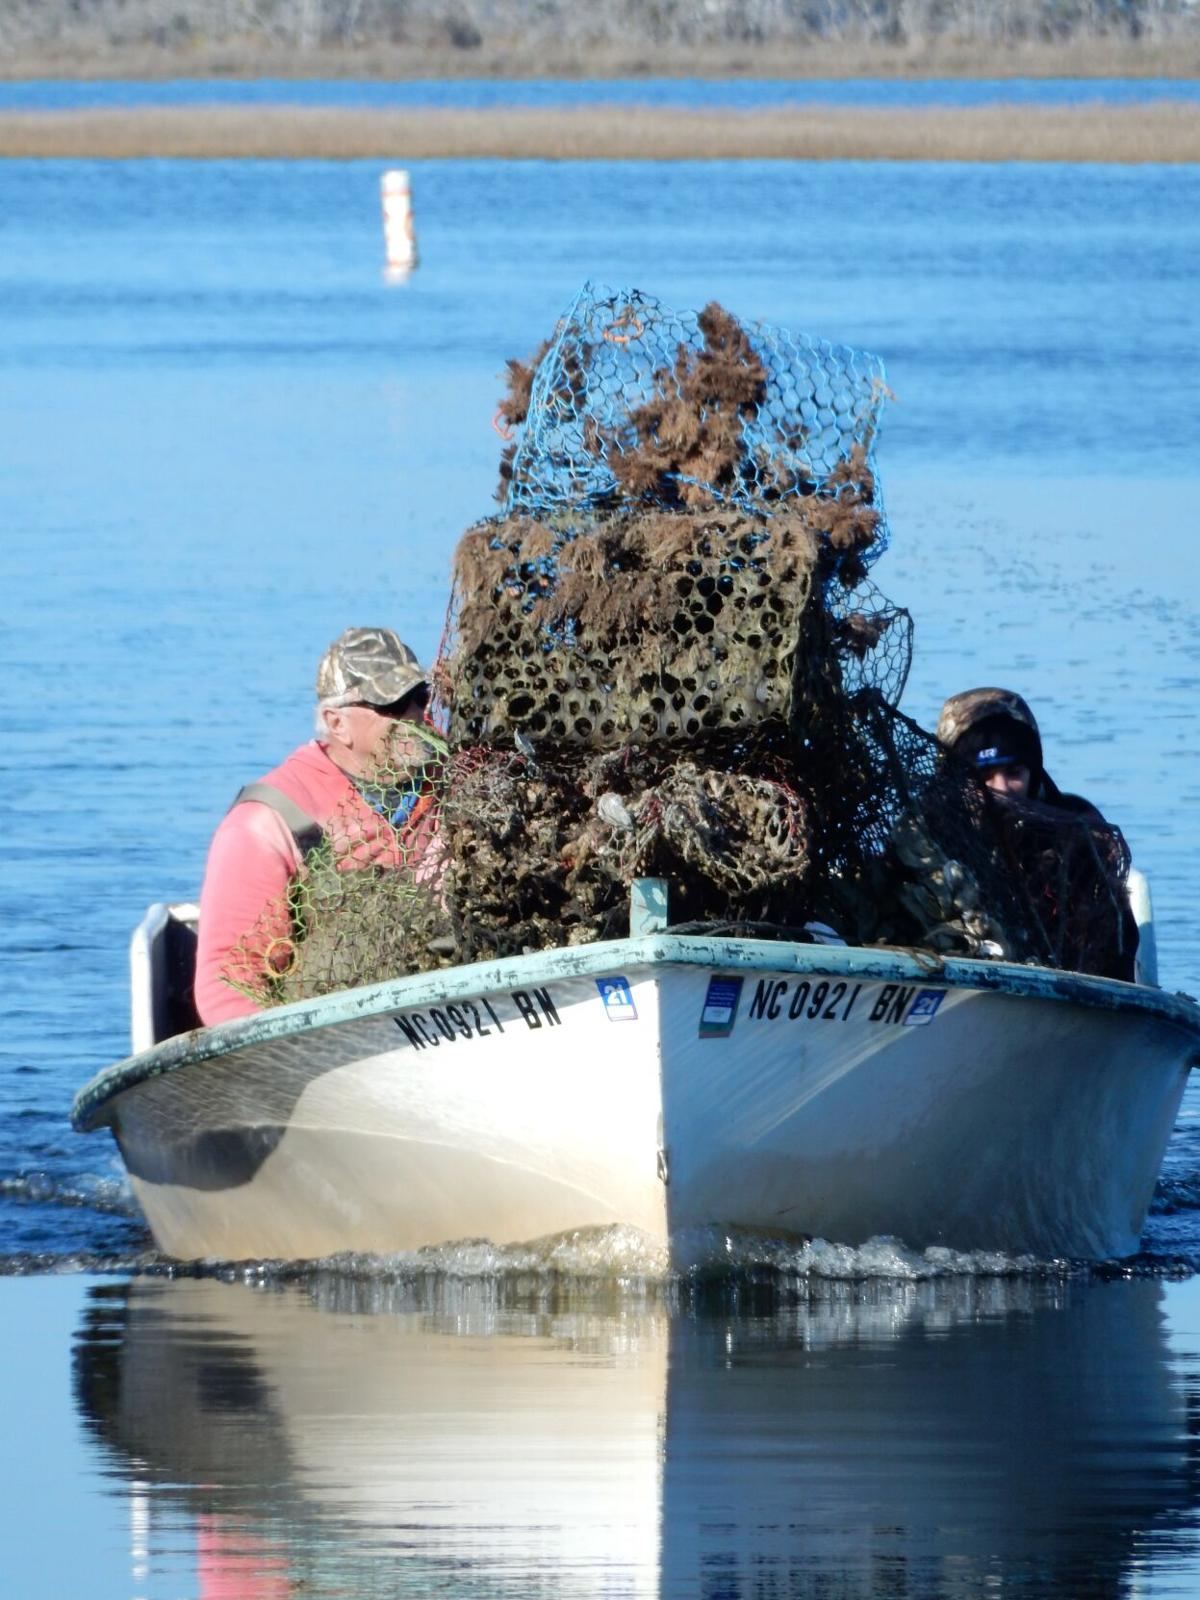 NCCF hires commercial fishermen to gather lost gear, clean waterways